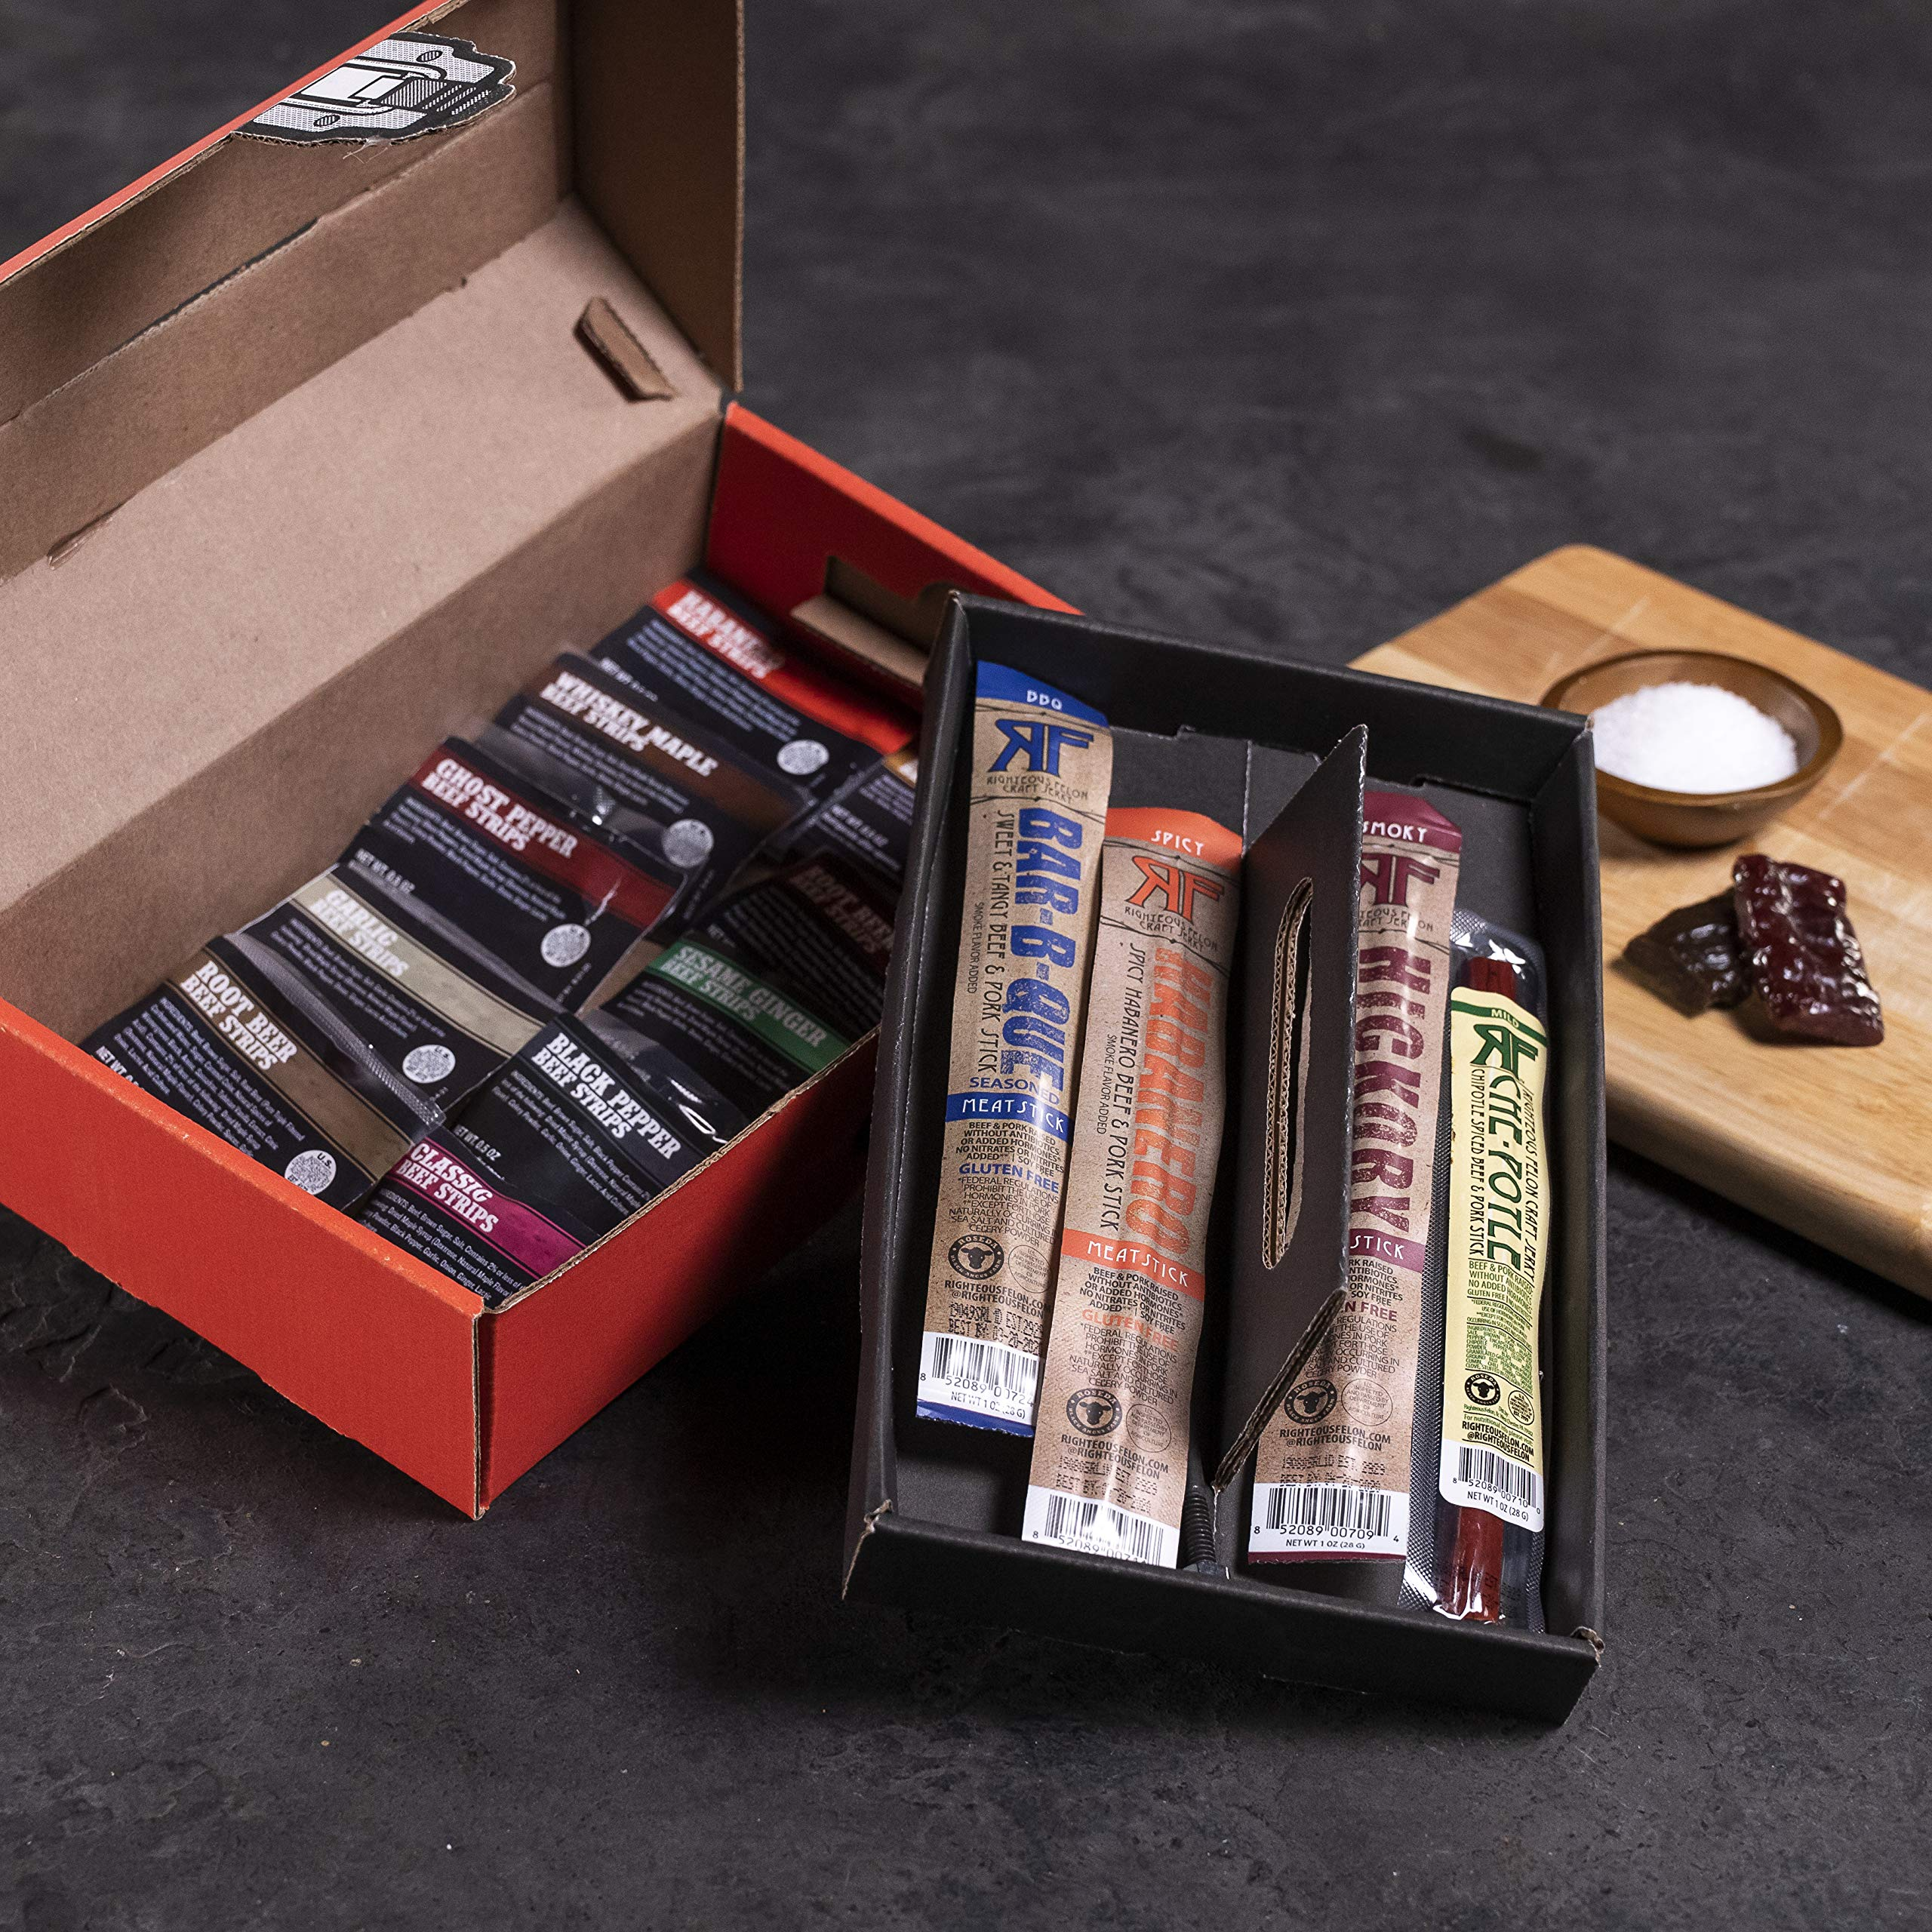 Man Crates Jerky Tool Box - Unique Gift For Men - Includes 14 Delicious Beef Jerky Flavors - In A Delightfully Surprising Tool-Shaped Box by Man Crates (Image #3)